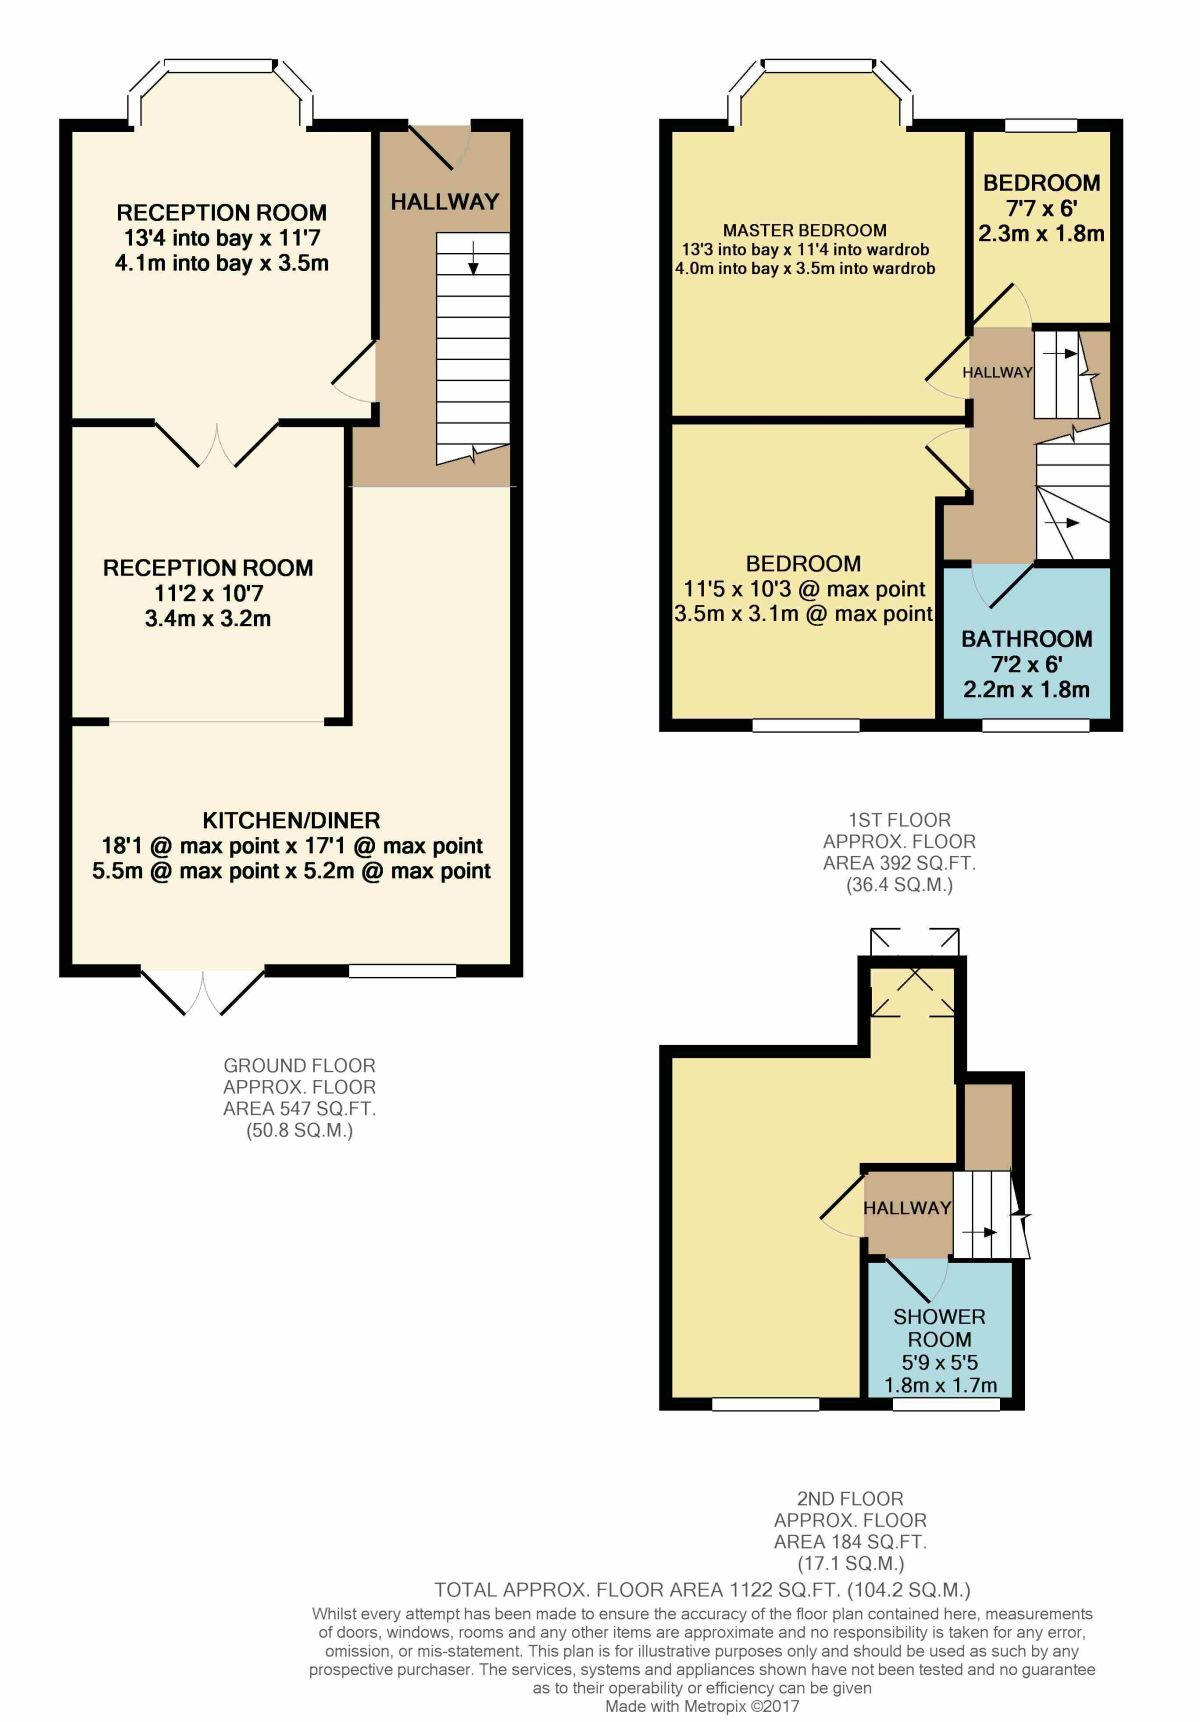 4 Bedroom Houses For Sale In Romford Your Move